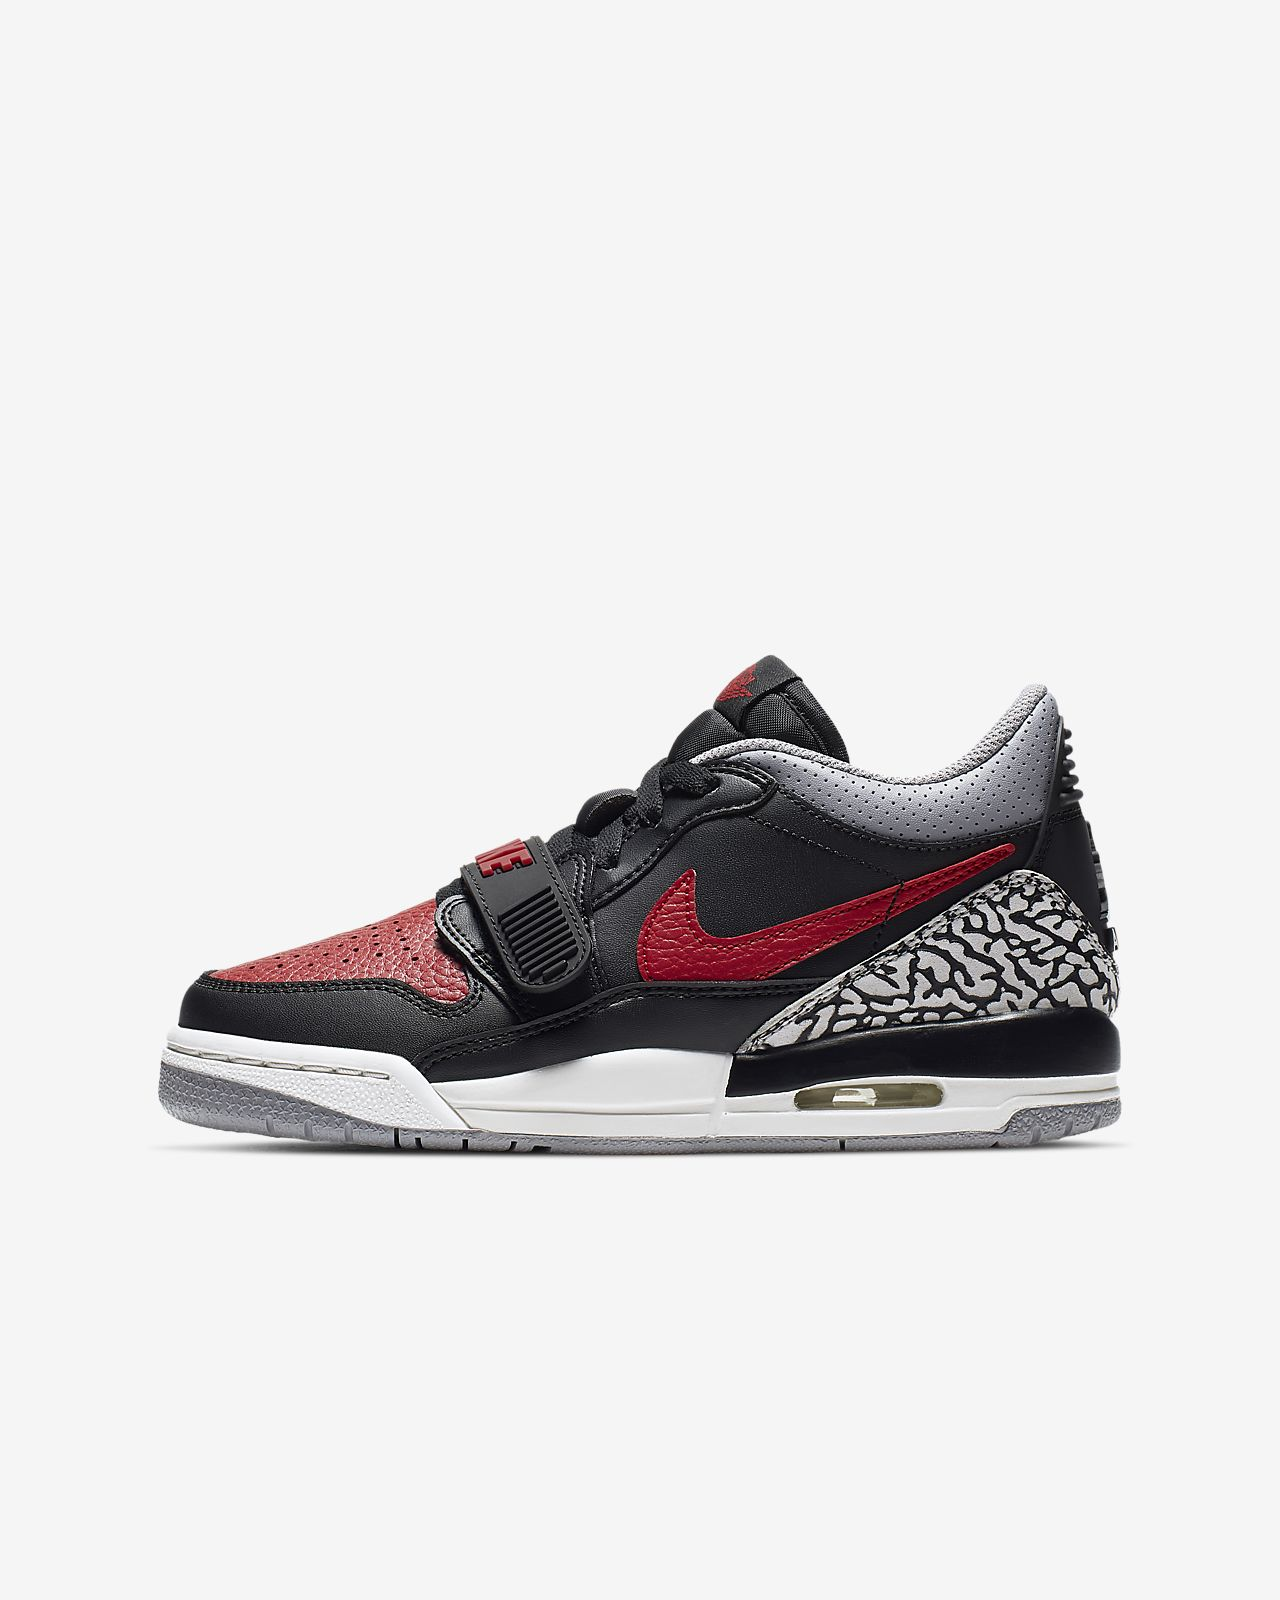 best website 091e7 811bb ... Air Jordan Legacy 312 Low Big Kids  Shoe